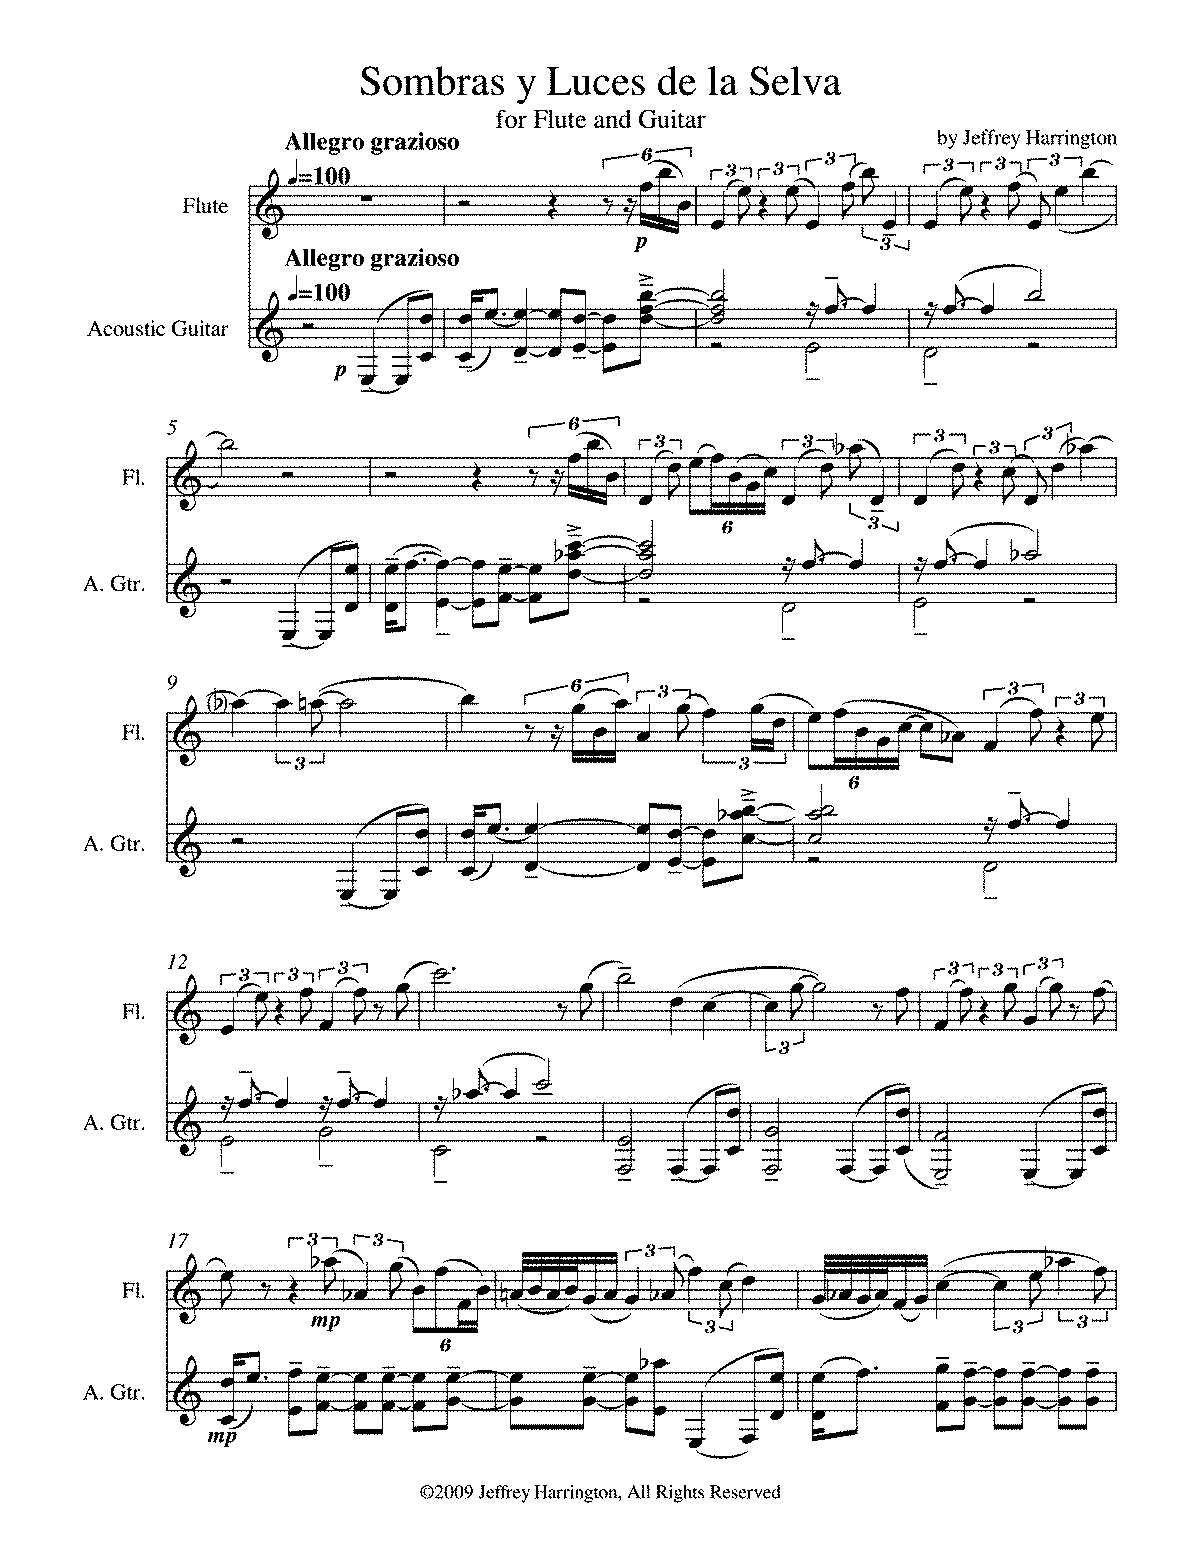 PMLP194345-sombras y luces de la selva for flute and guitar score.pdf